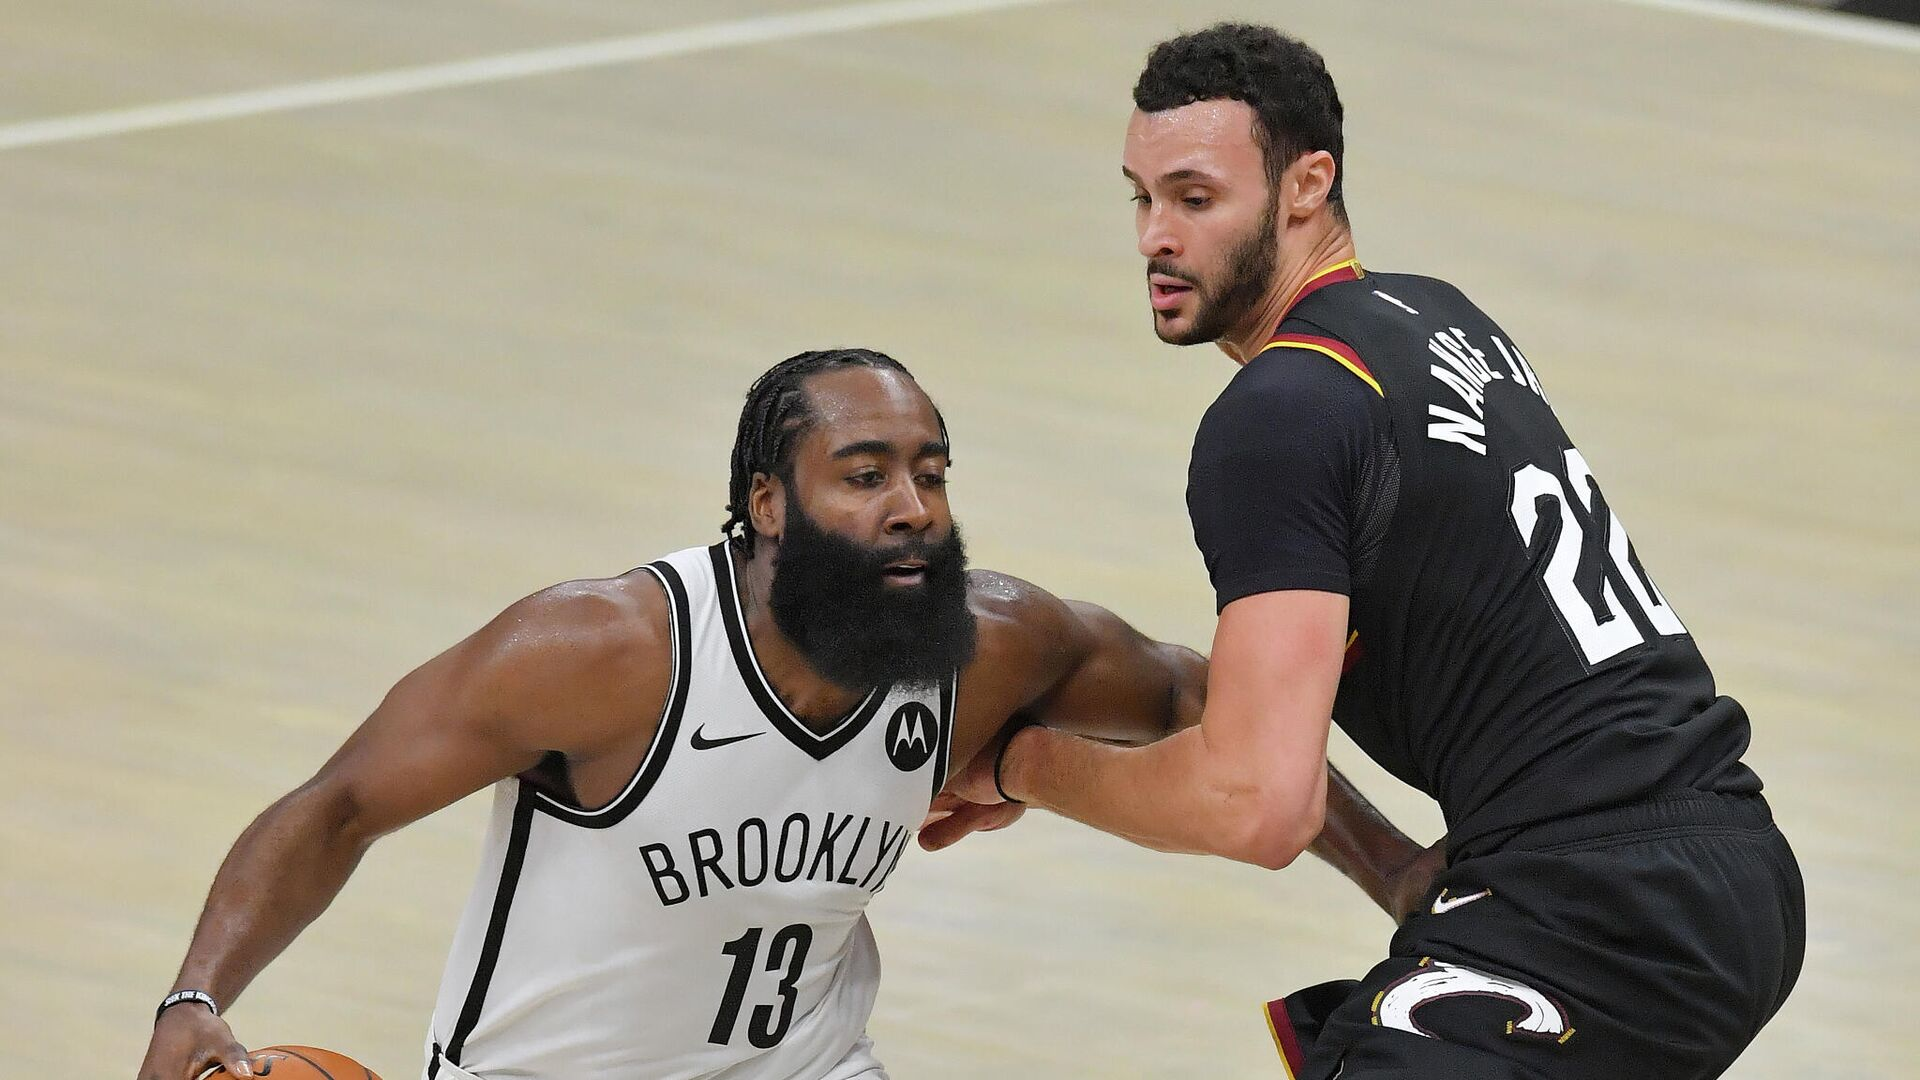 CLEVELAND, OHIO - JANUARY 20: James Harden #13 of the Brooklyn Nets drives around Larry Nance Jr. #22 of the Cleveland Cavaliers during the third quarter at Rocket Mortgage Fieldhouse on January 20, 2021 in Cleveland, Ohio. NOTE TO USER: User expressly acknowledges and agrees that, by downloading and/or using this photograph, user is consenting to the terms and conditions of the Getty Images License Agreement.   Jason Miller/Getty Images/AFP - РИА Новости, 1920, 21.01.2021